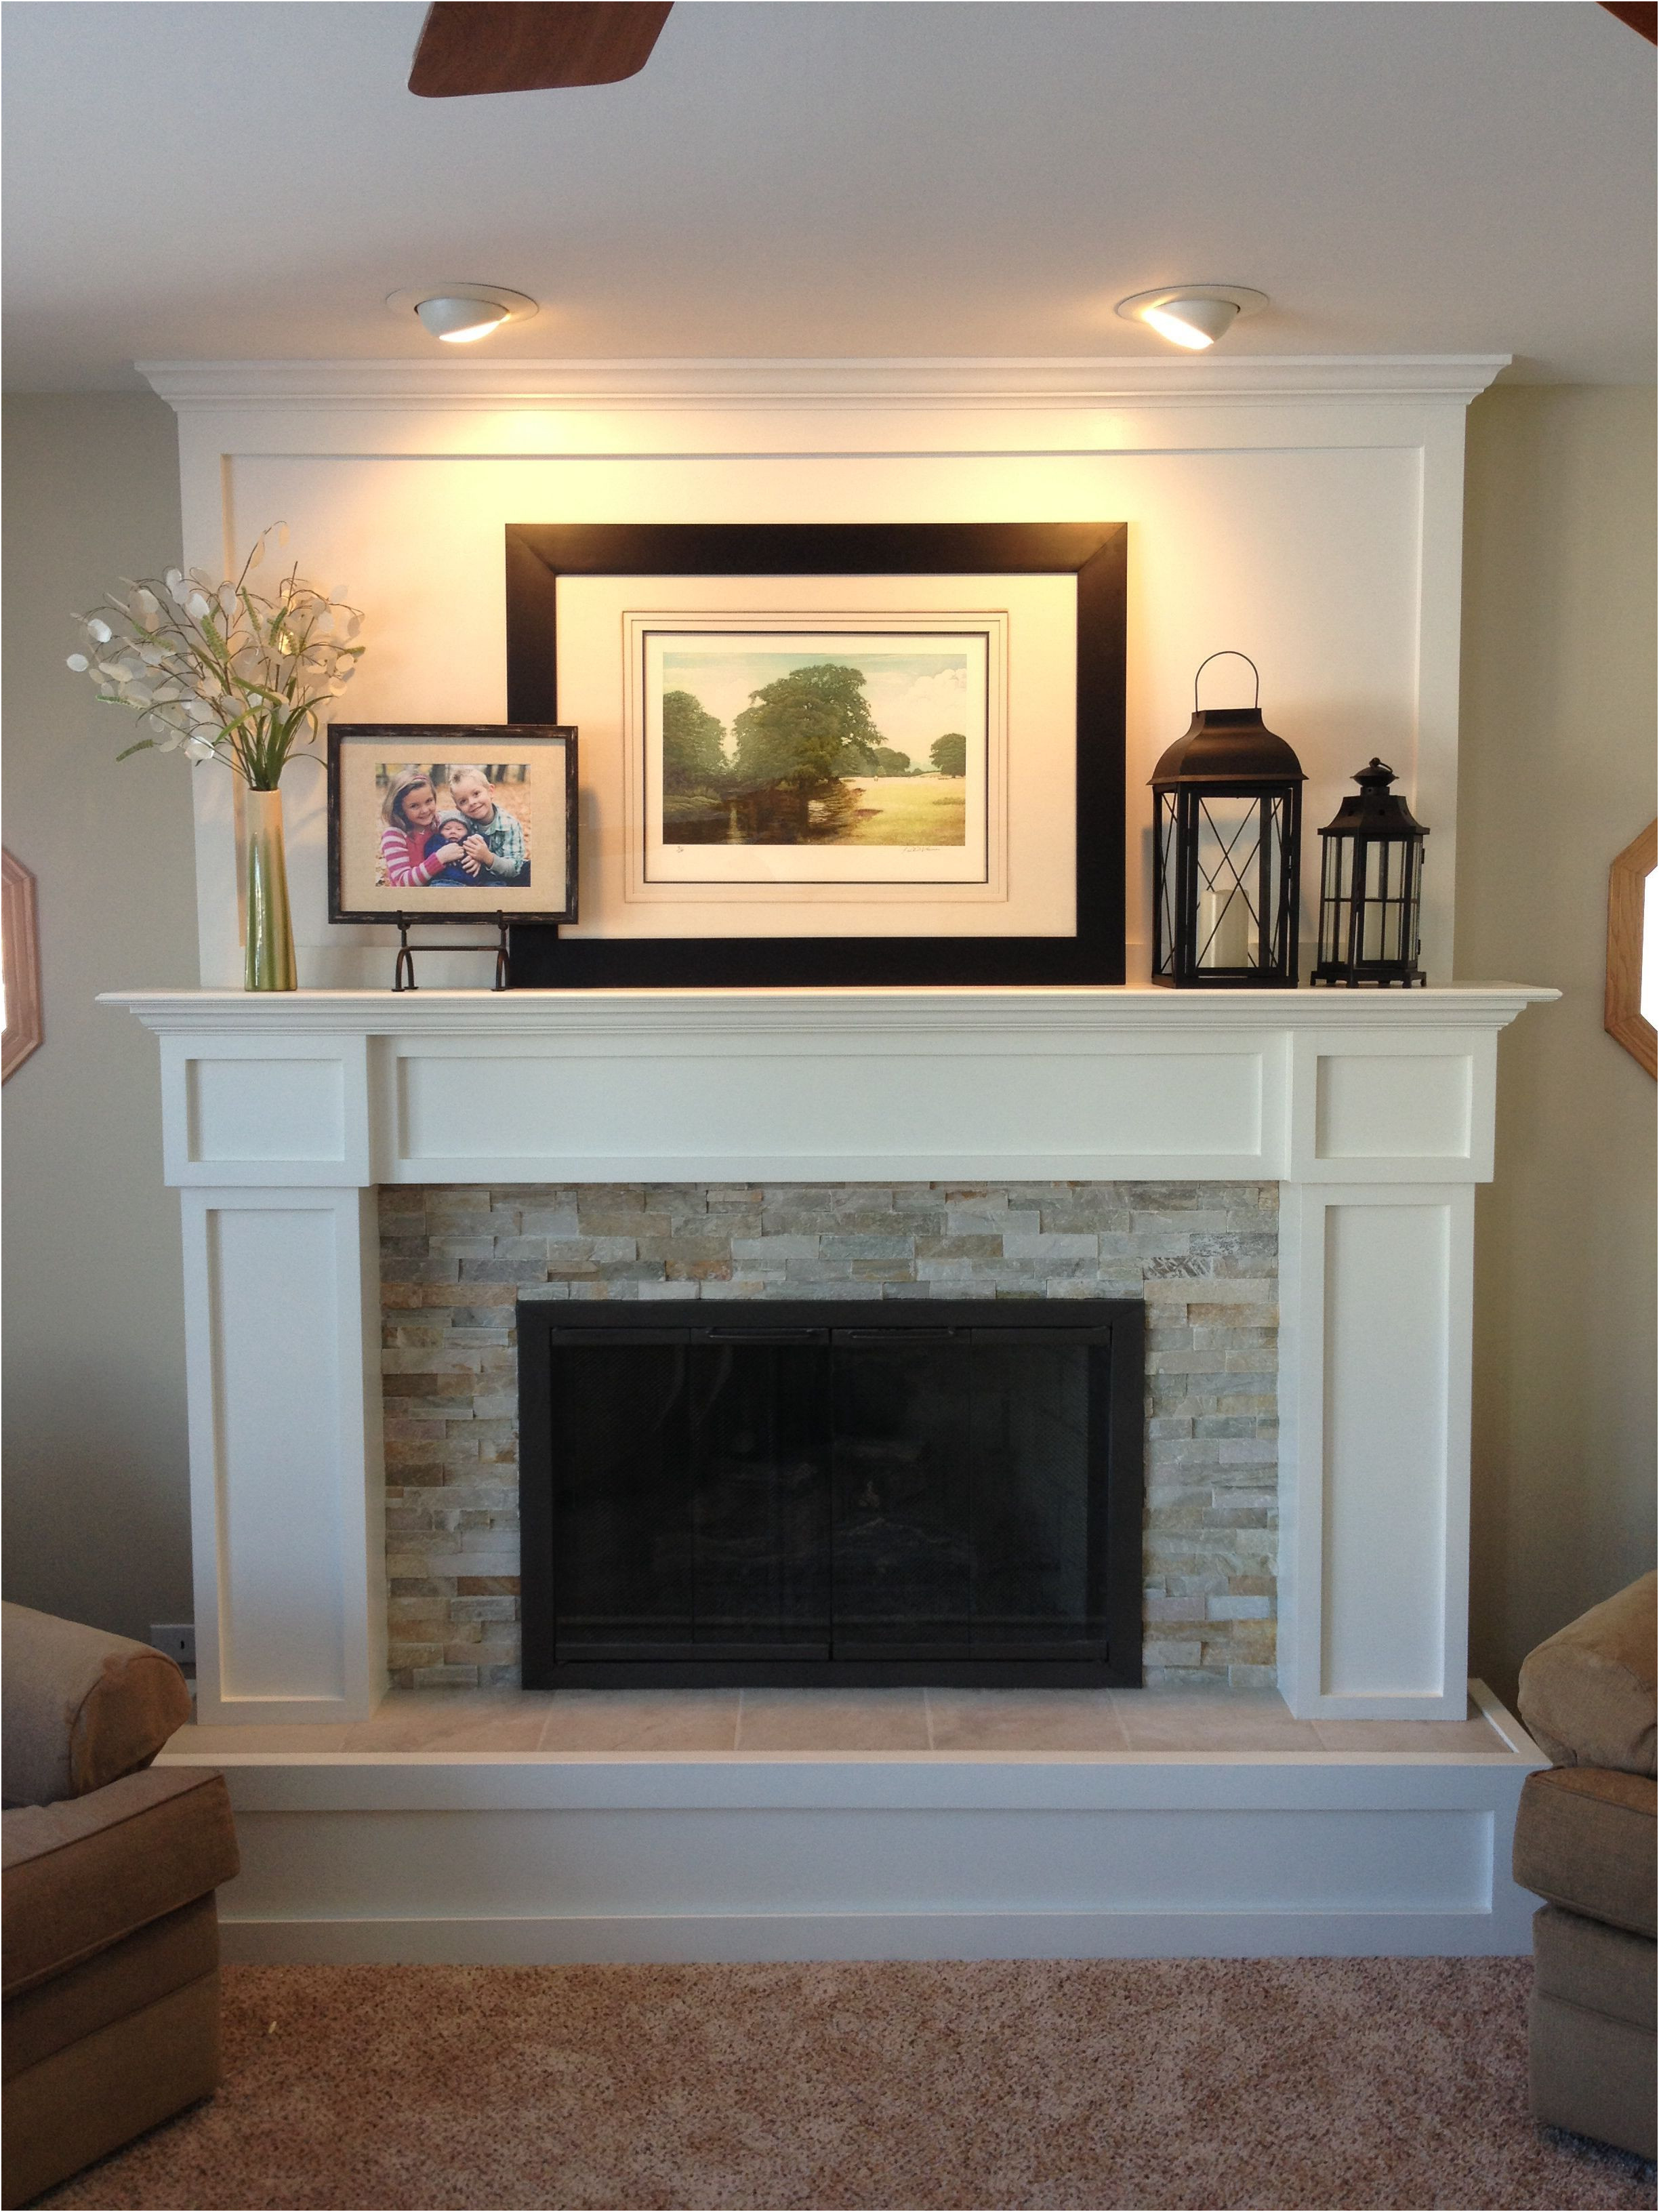 Fresh Remodel A Fireplace